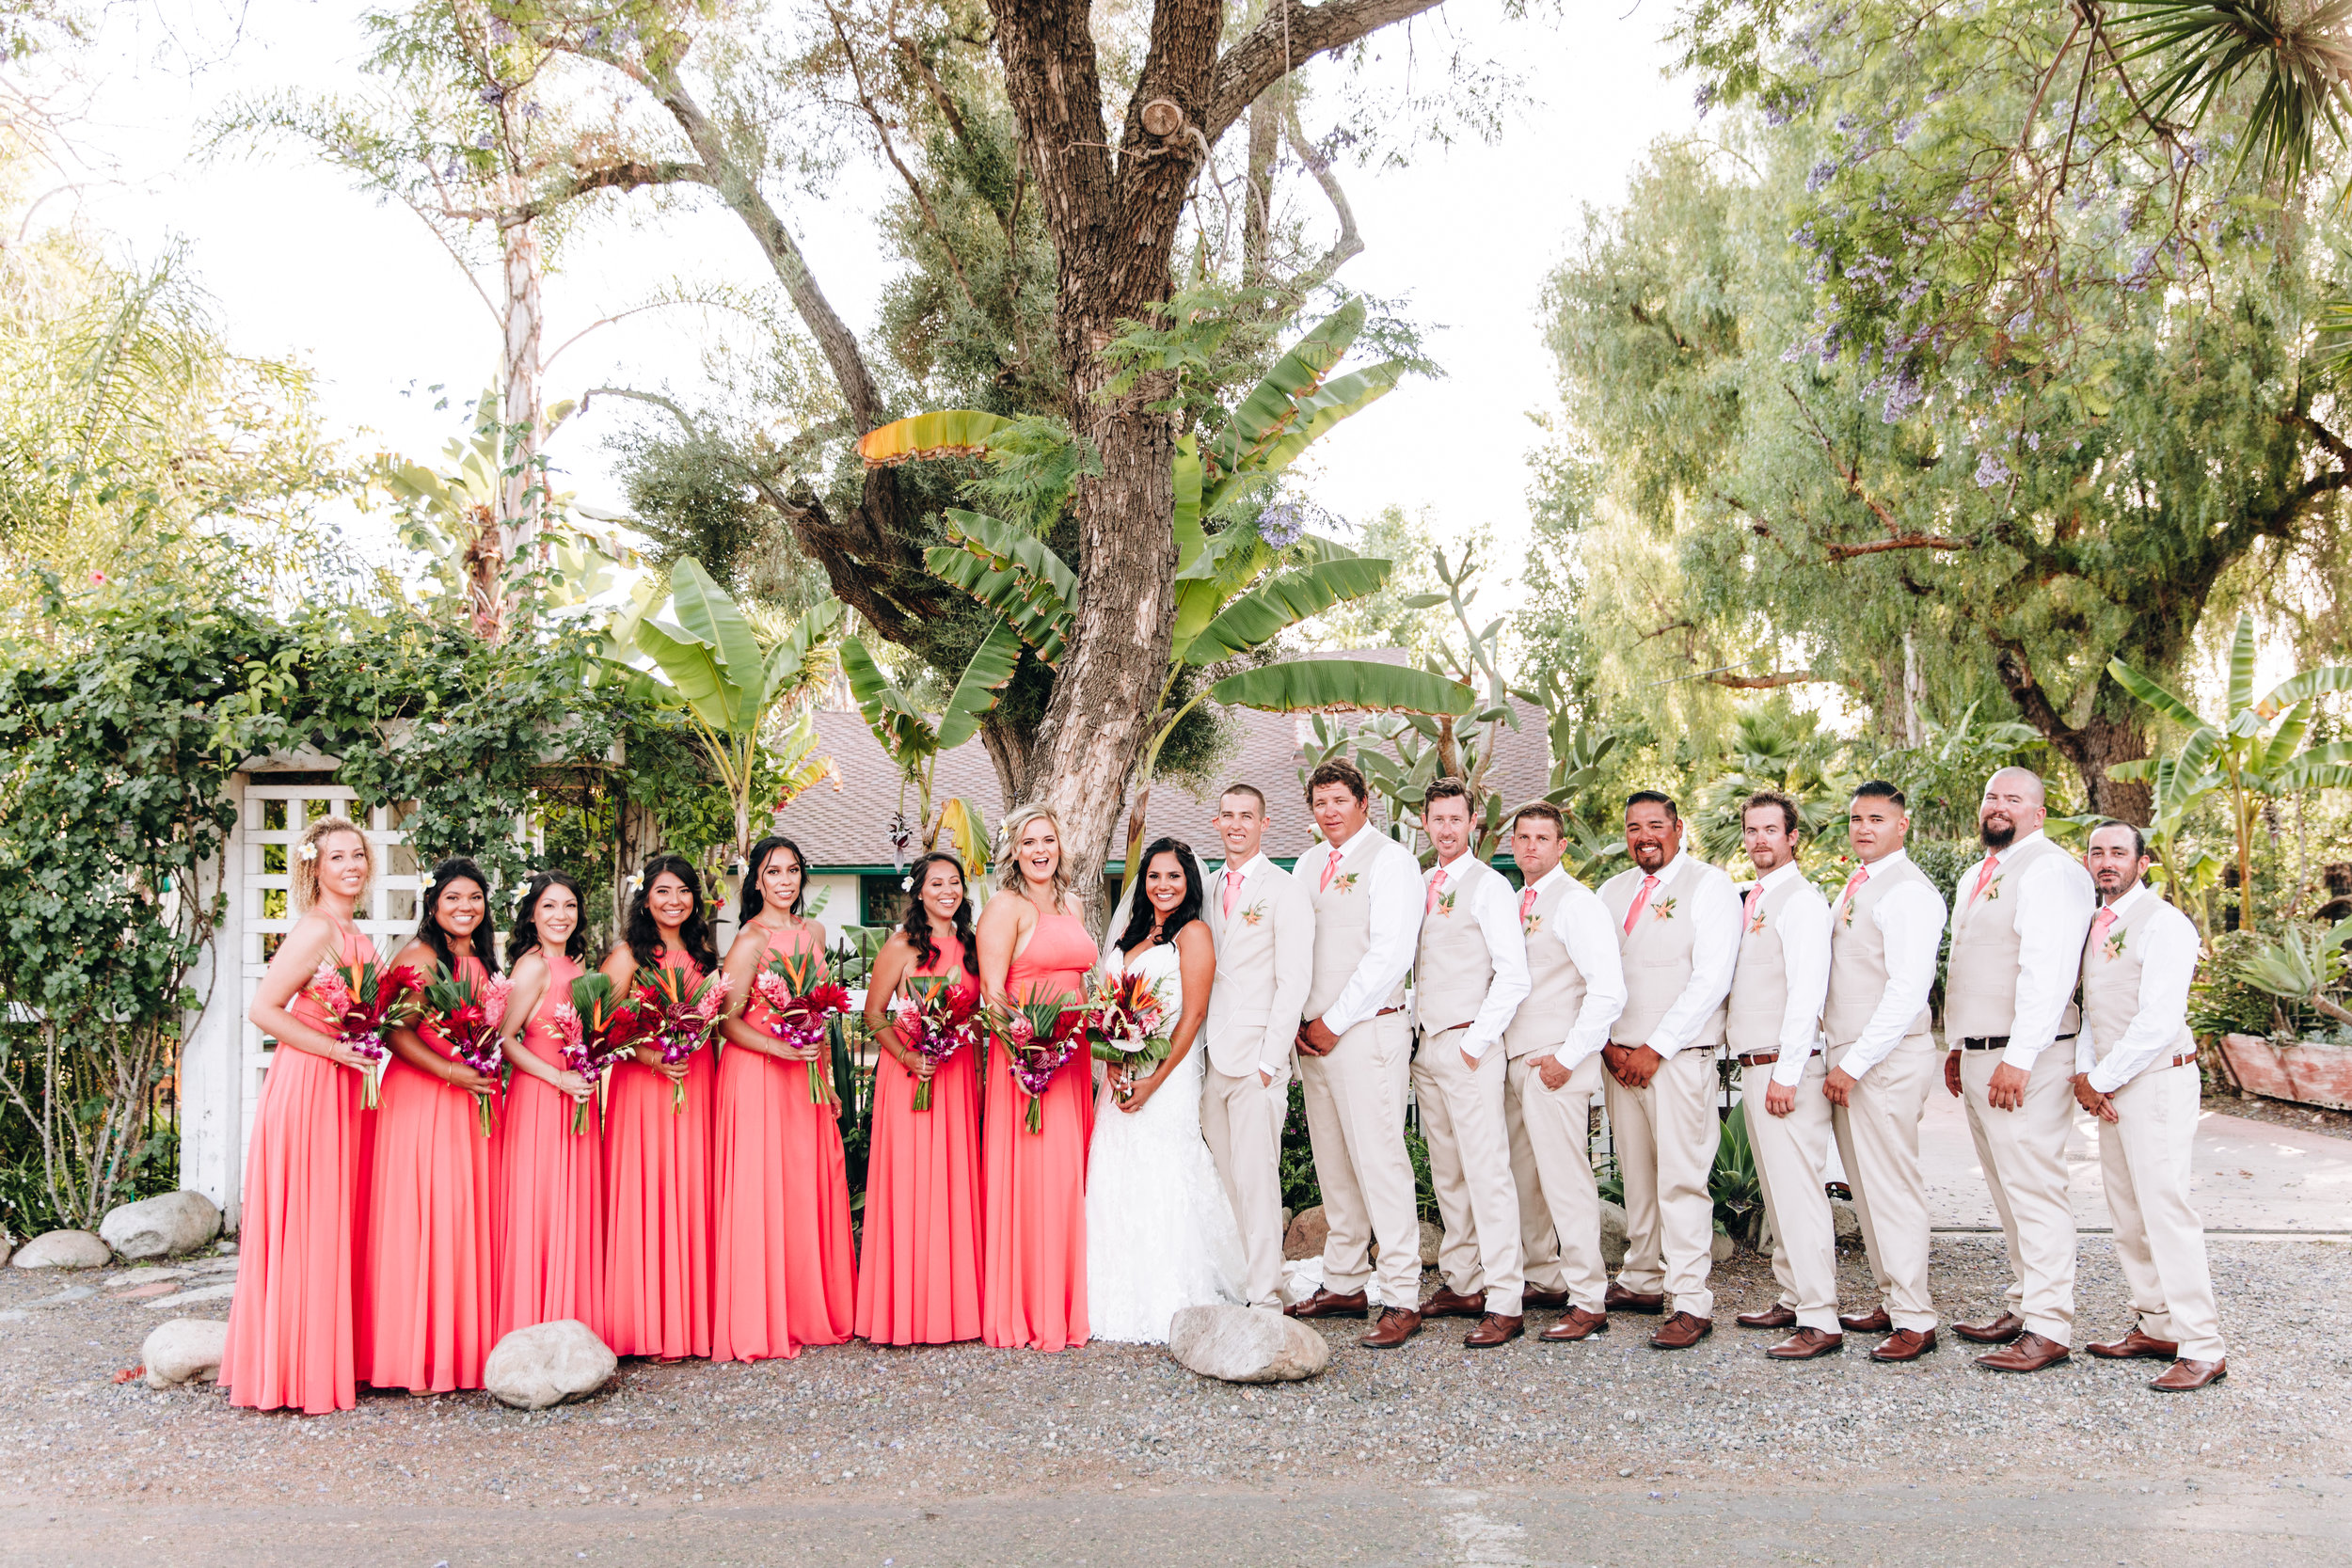 OC wedding photographer, Southern California wedding photographer, Orange County wedding photographer, SoCal wedding photographer, San Juan wedding photographer, El Adobe Wedding photographer